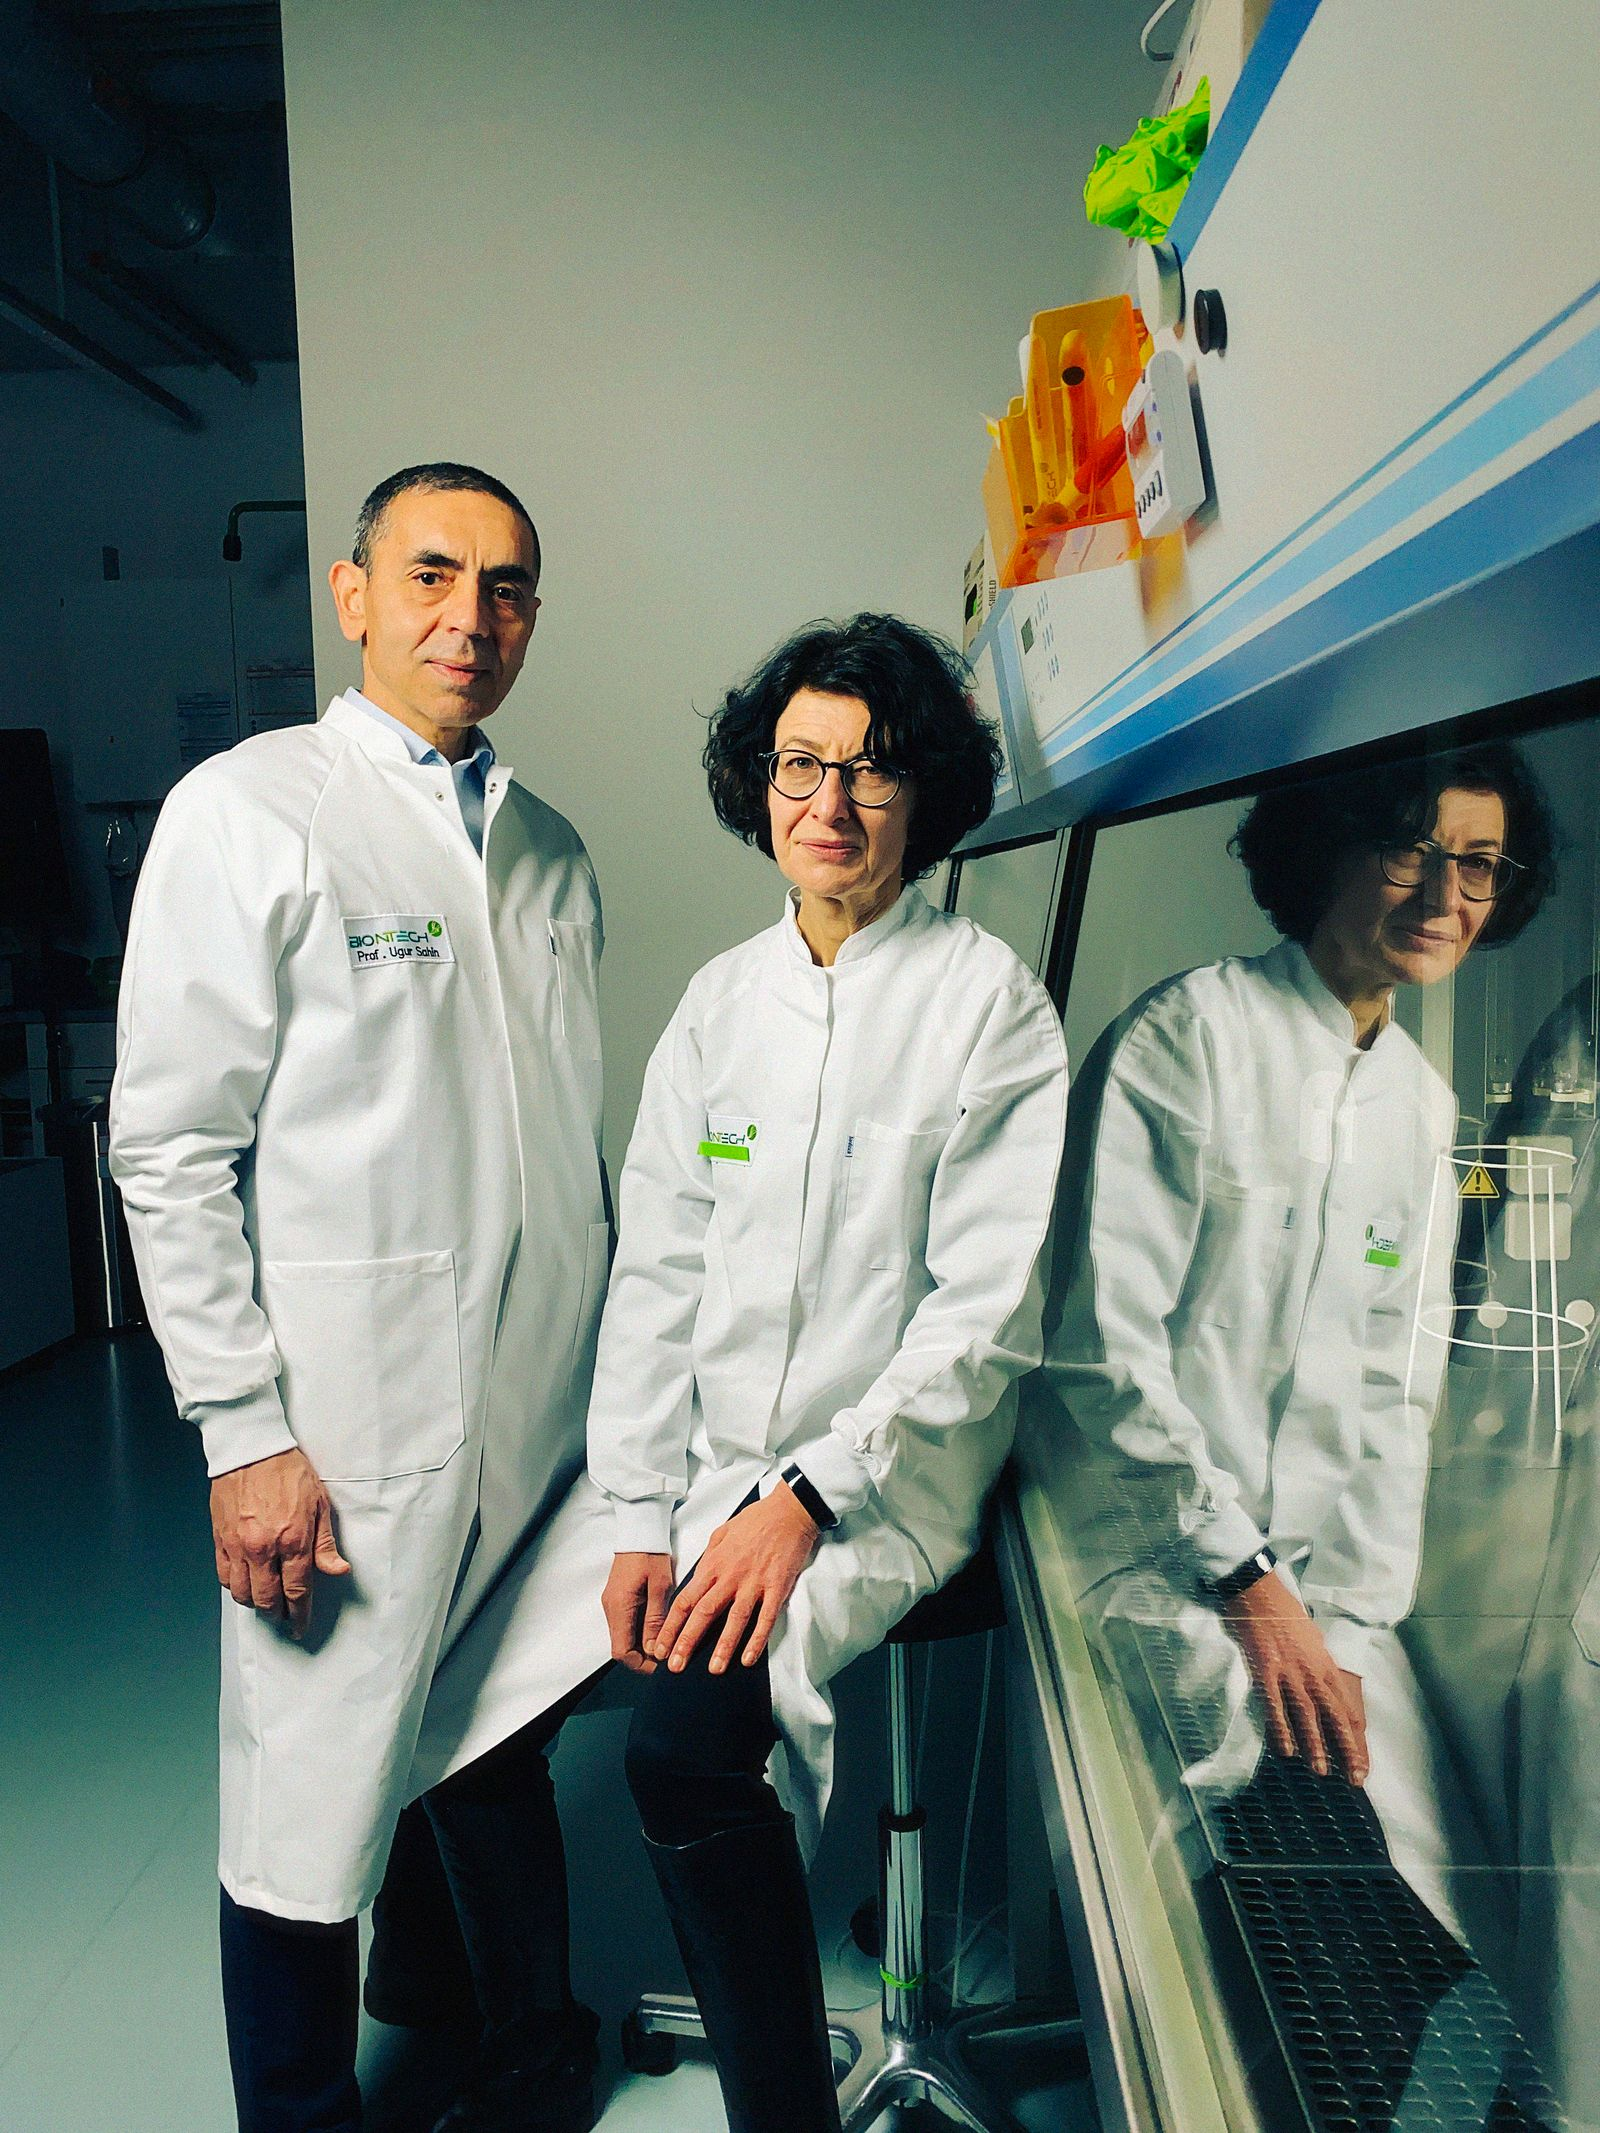 Dr. Ugur Sahin and Dr. ÷zlem T¸reci, BioNTech co-founders